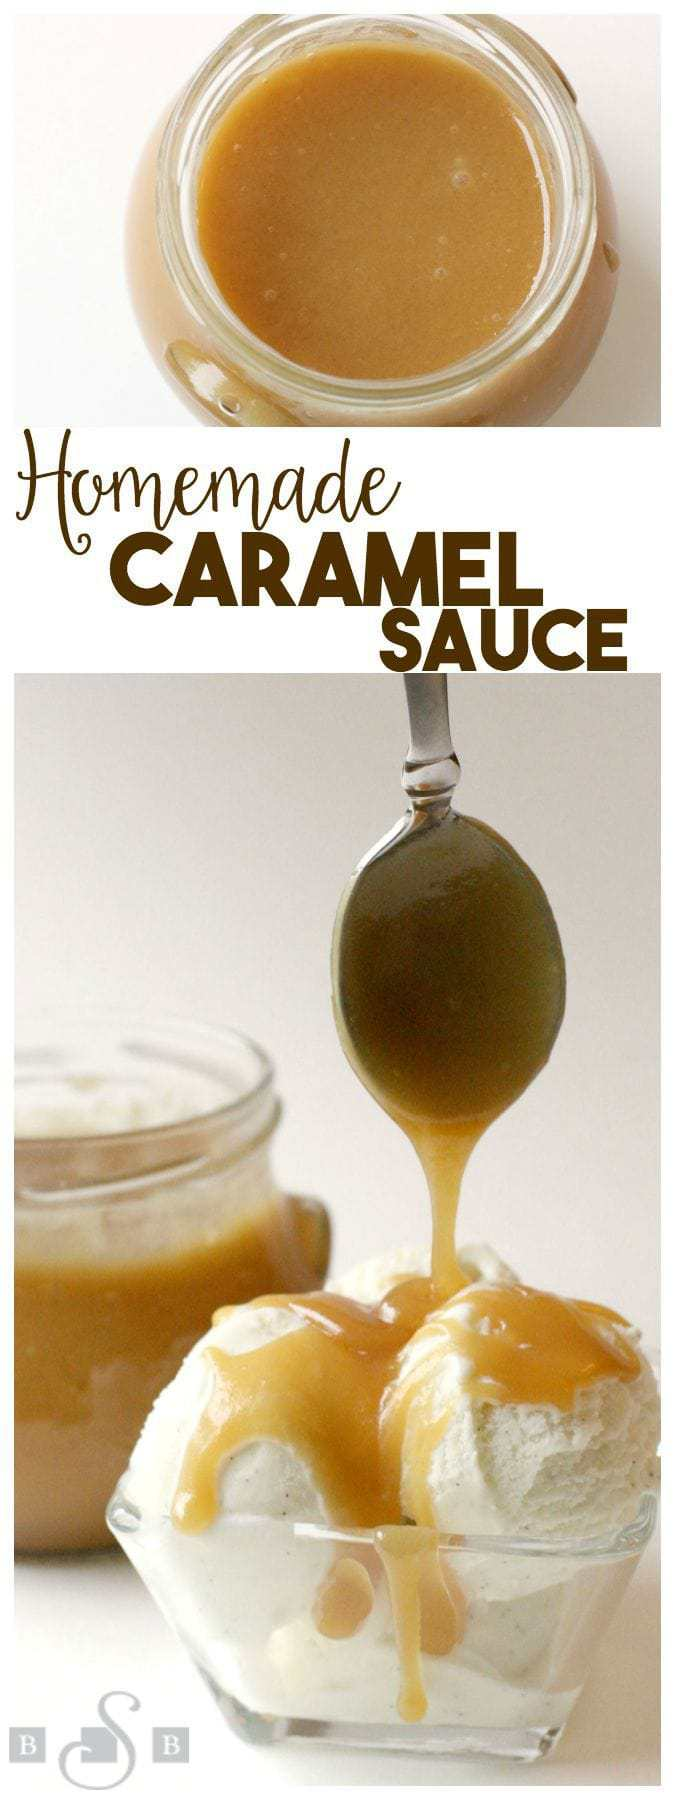 This recipe for caramel sauce has been in my husband's family for as long as I've known them. This recipe is the real deal- heavycream and butter give it a delicious flavor that's irresistible.It's not difficult to make and there's no candy thermometer required. It's perfect drizzled over ice cream, on top of cakes, cookies- you name it! This caramel sauces firms up when cool, so it's also great for coating pretzels, apples, etc.